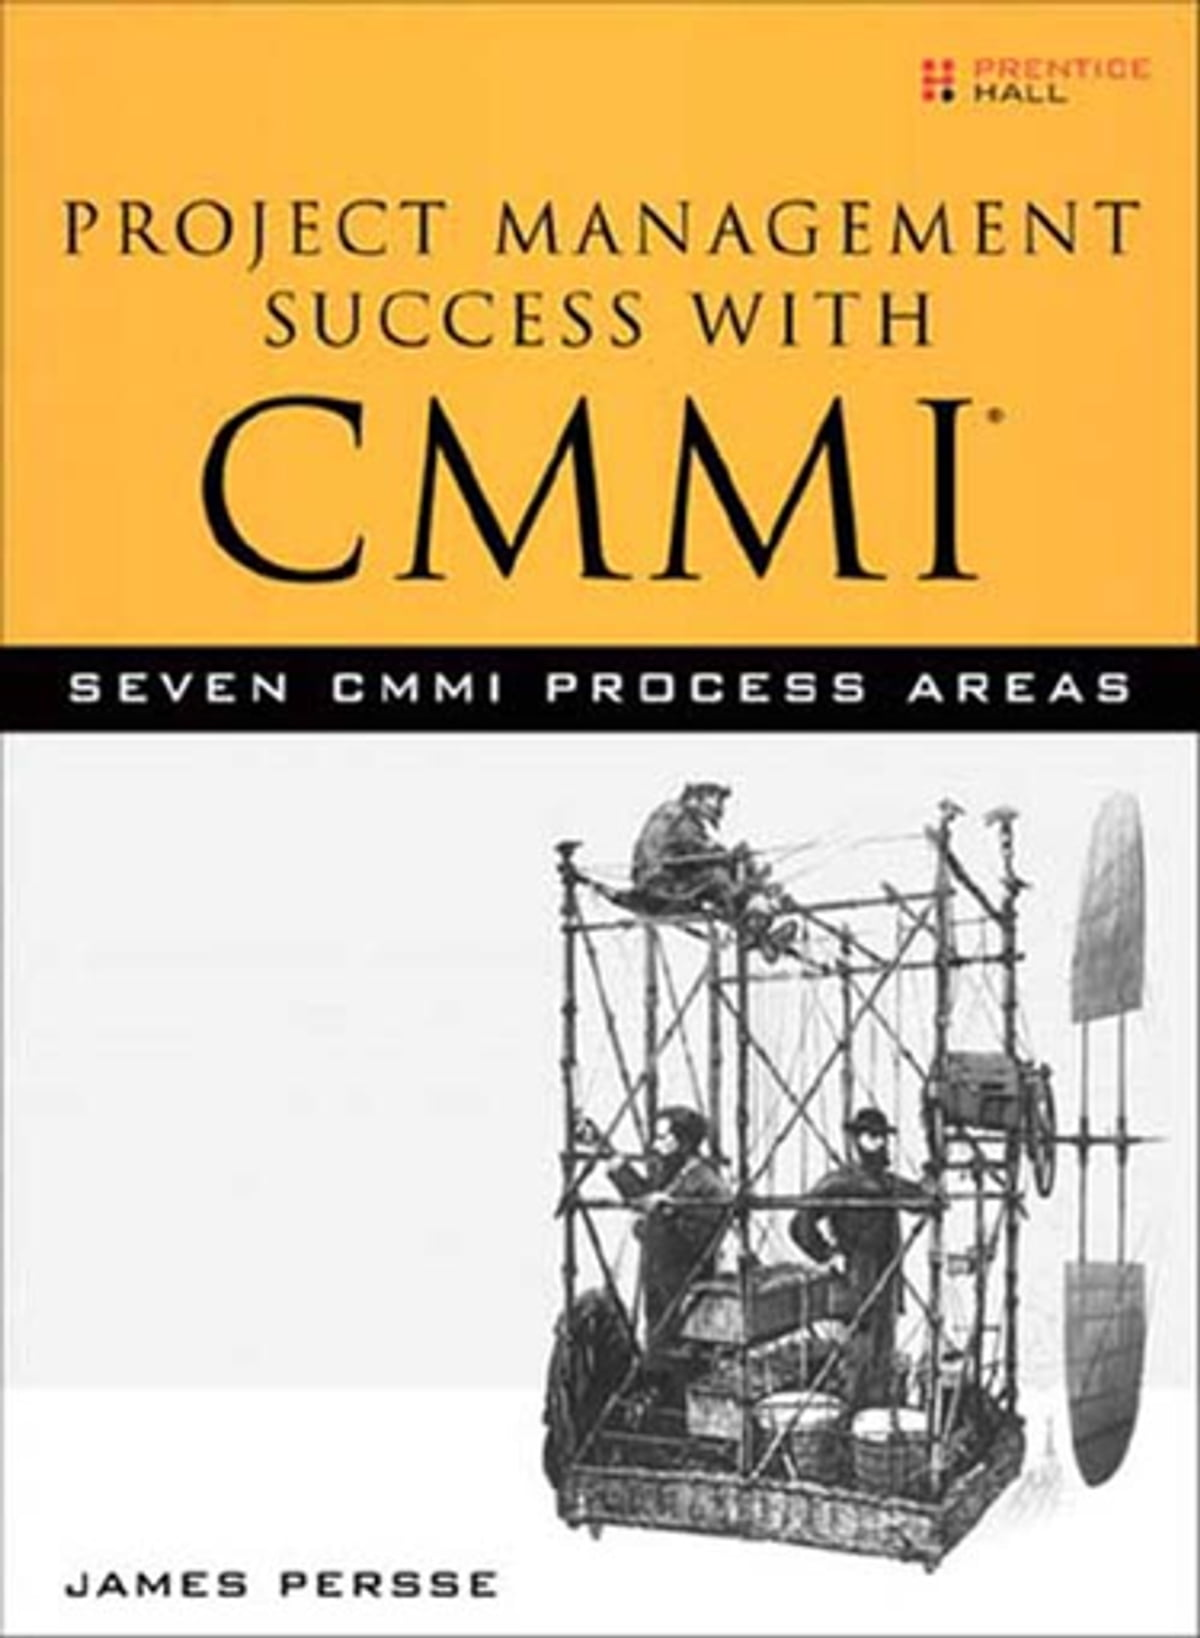 Project Management Success With Cmmi Ebook By James Persse